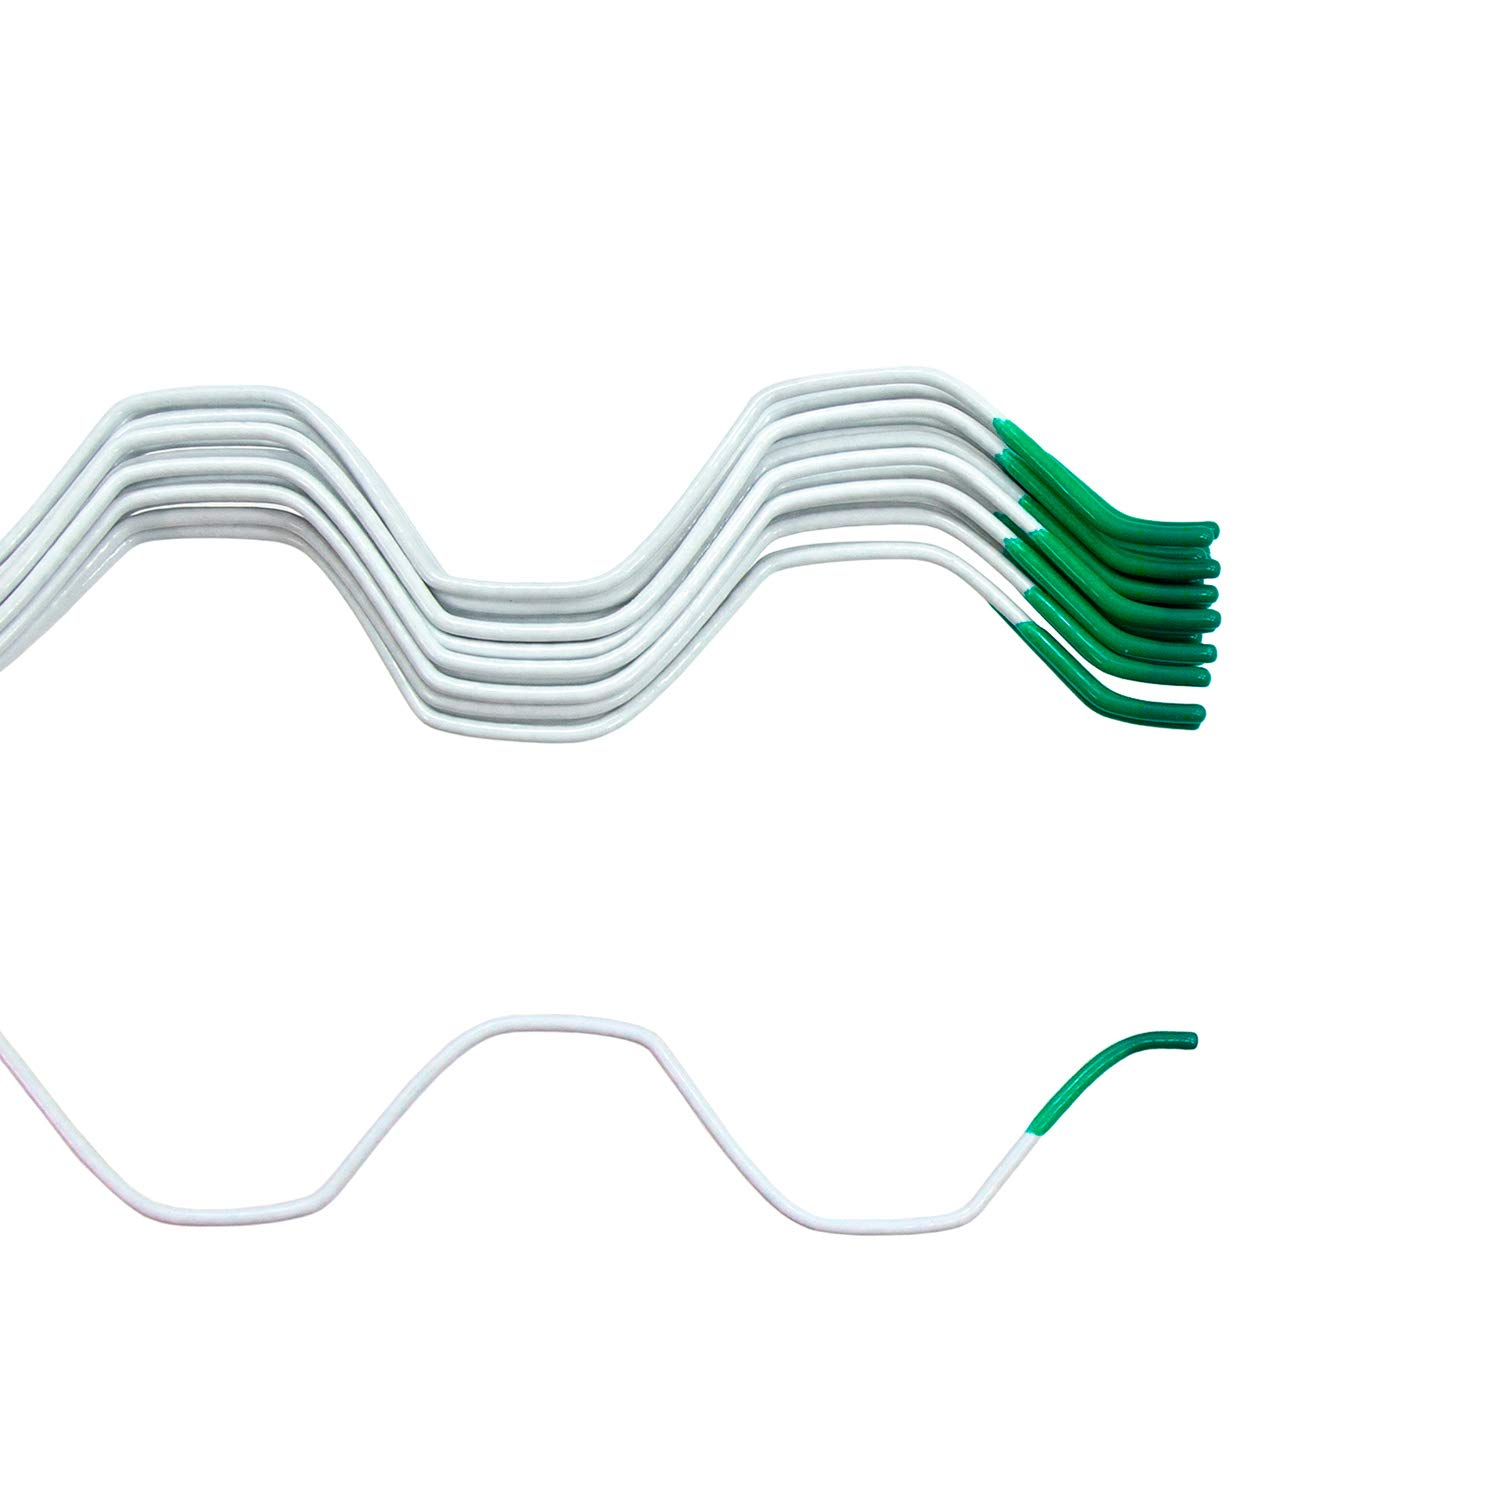 Jiggly Greenhouse Wire Only 6' 6'' Greenhouse Film PVC Coated Spring Lock for Attachment of Plastic Poly Film (20 Pack)